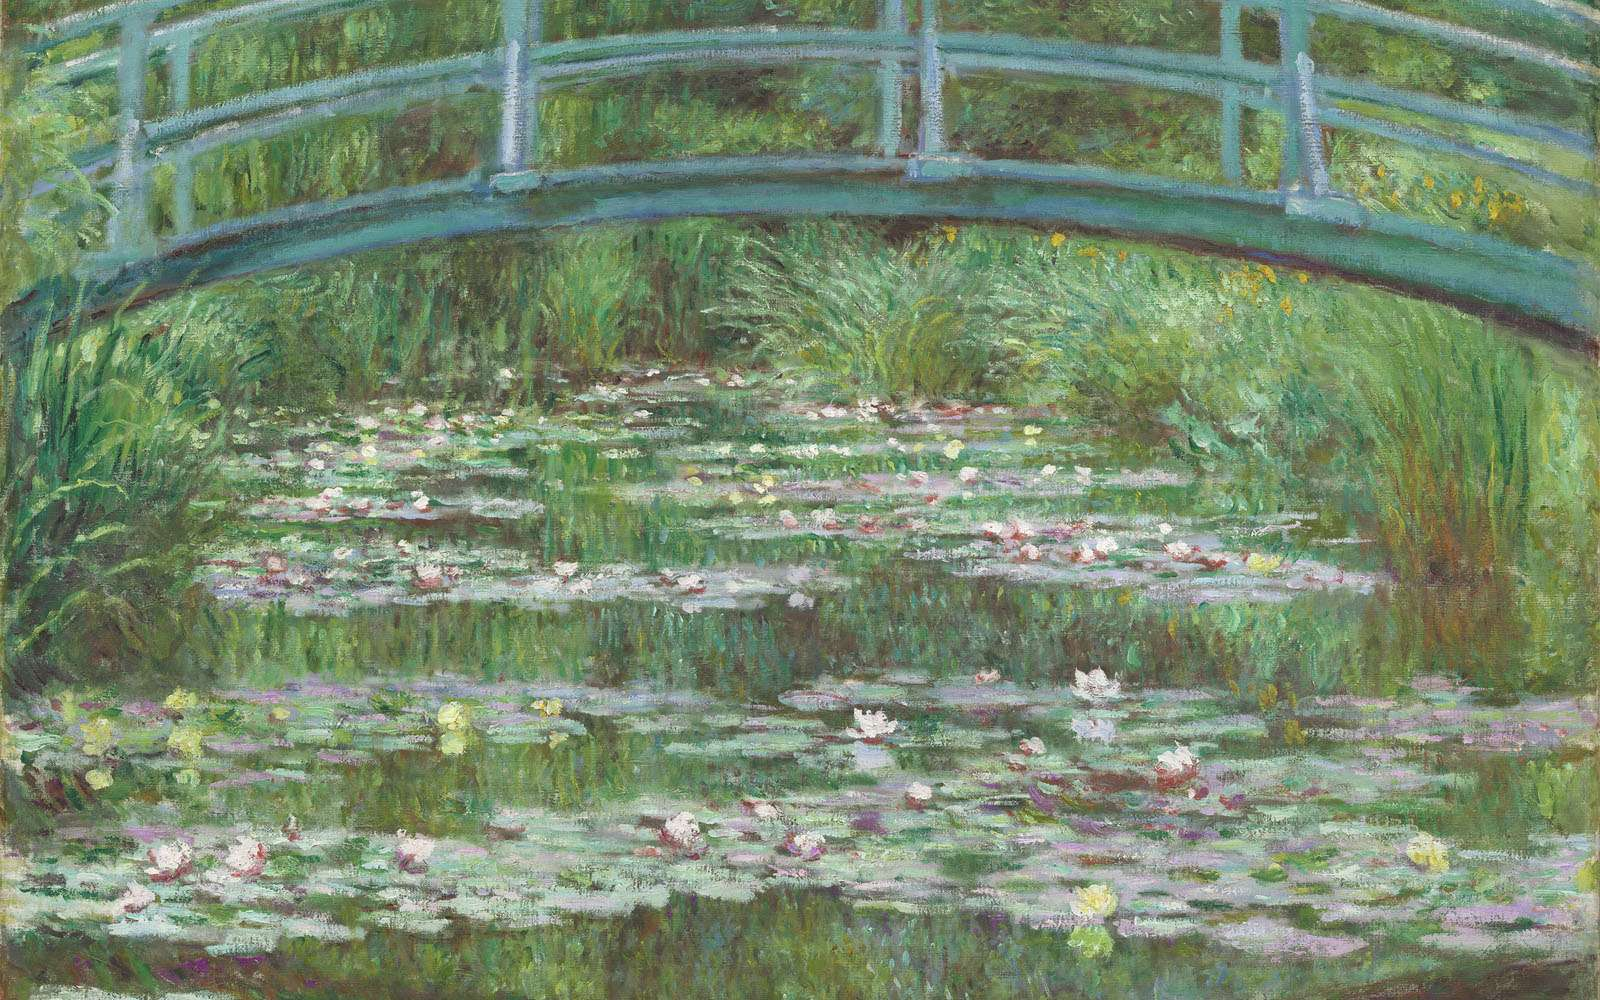 Huile sur toile de Claude Monet, Le bassin aux nymphéas ou La passerelle japonaise, 1899. © Courtesy National Gallery of Art de Washington, DP